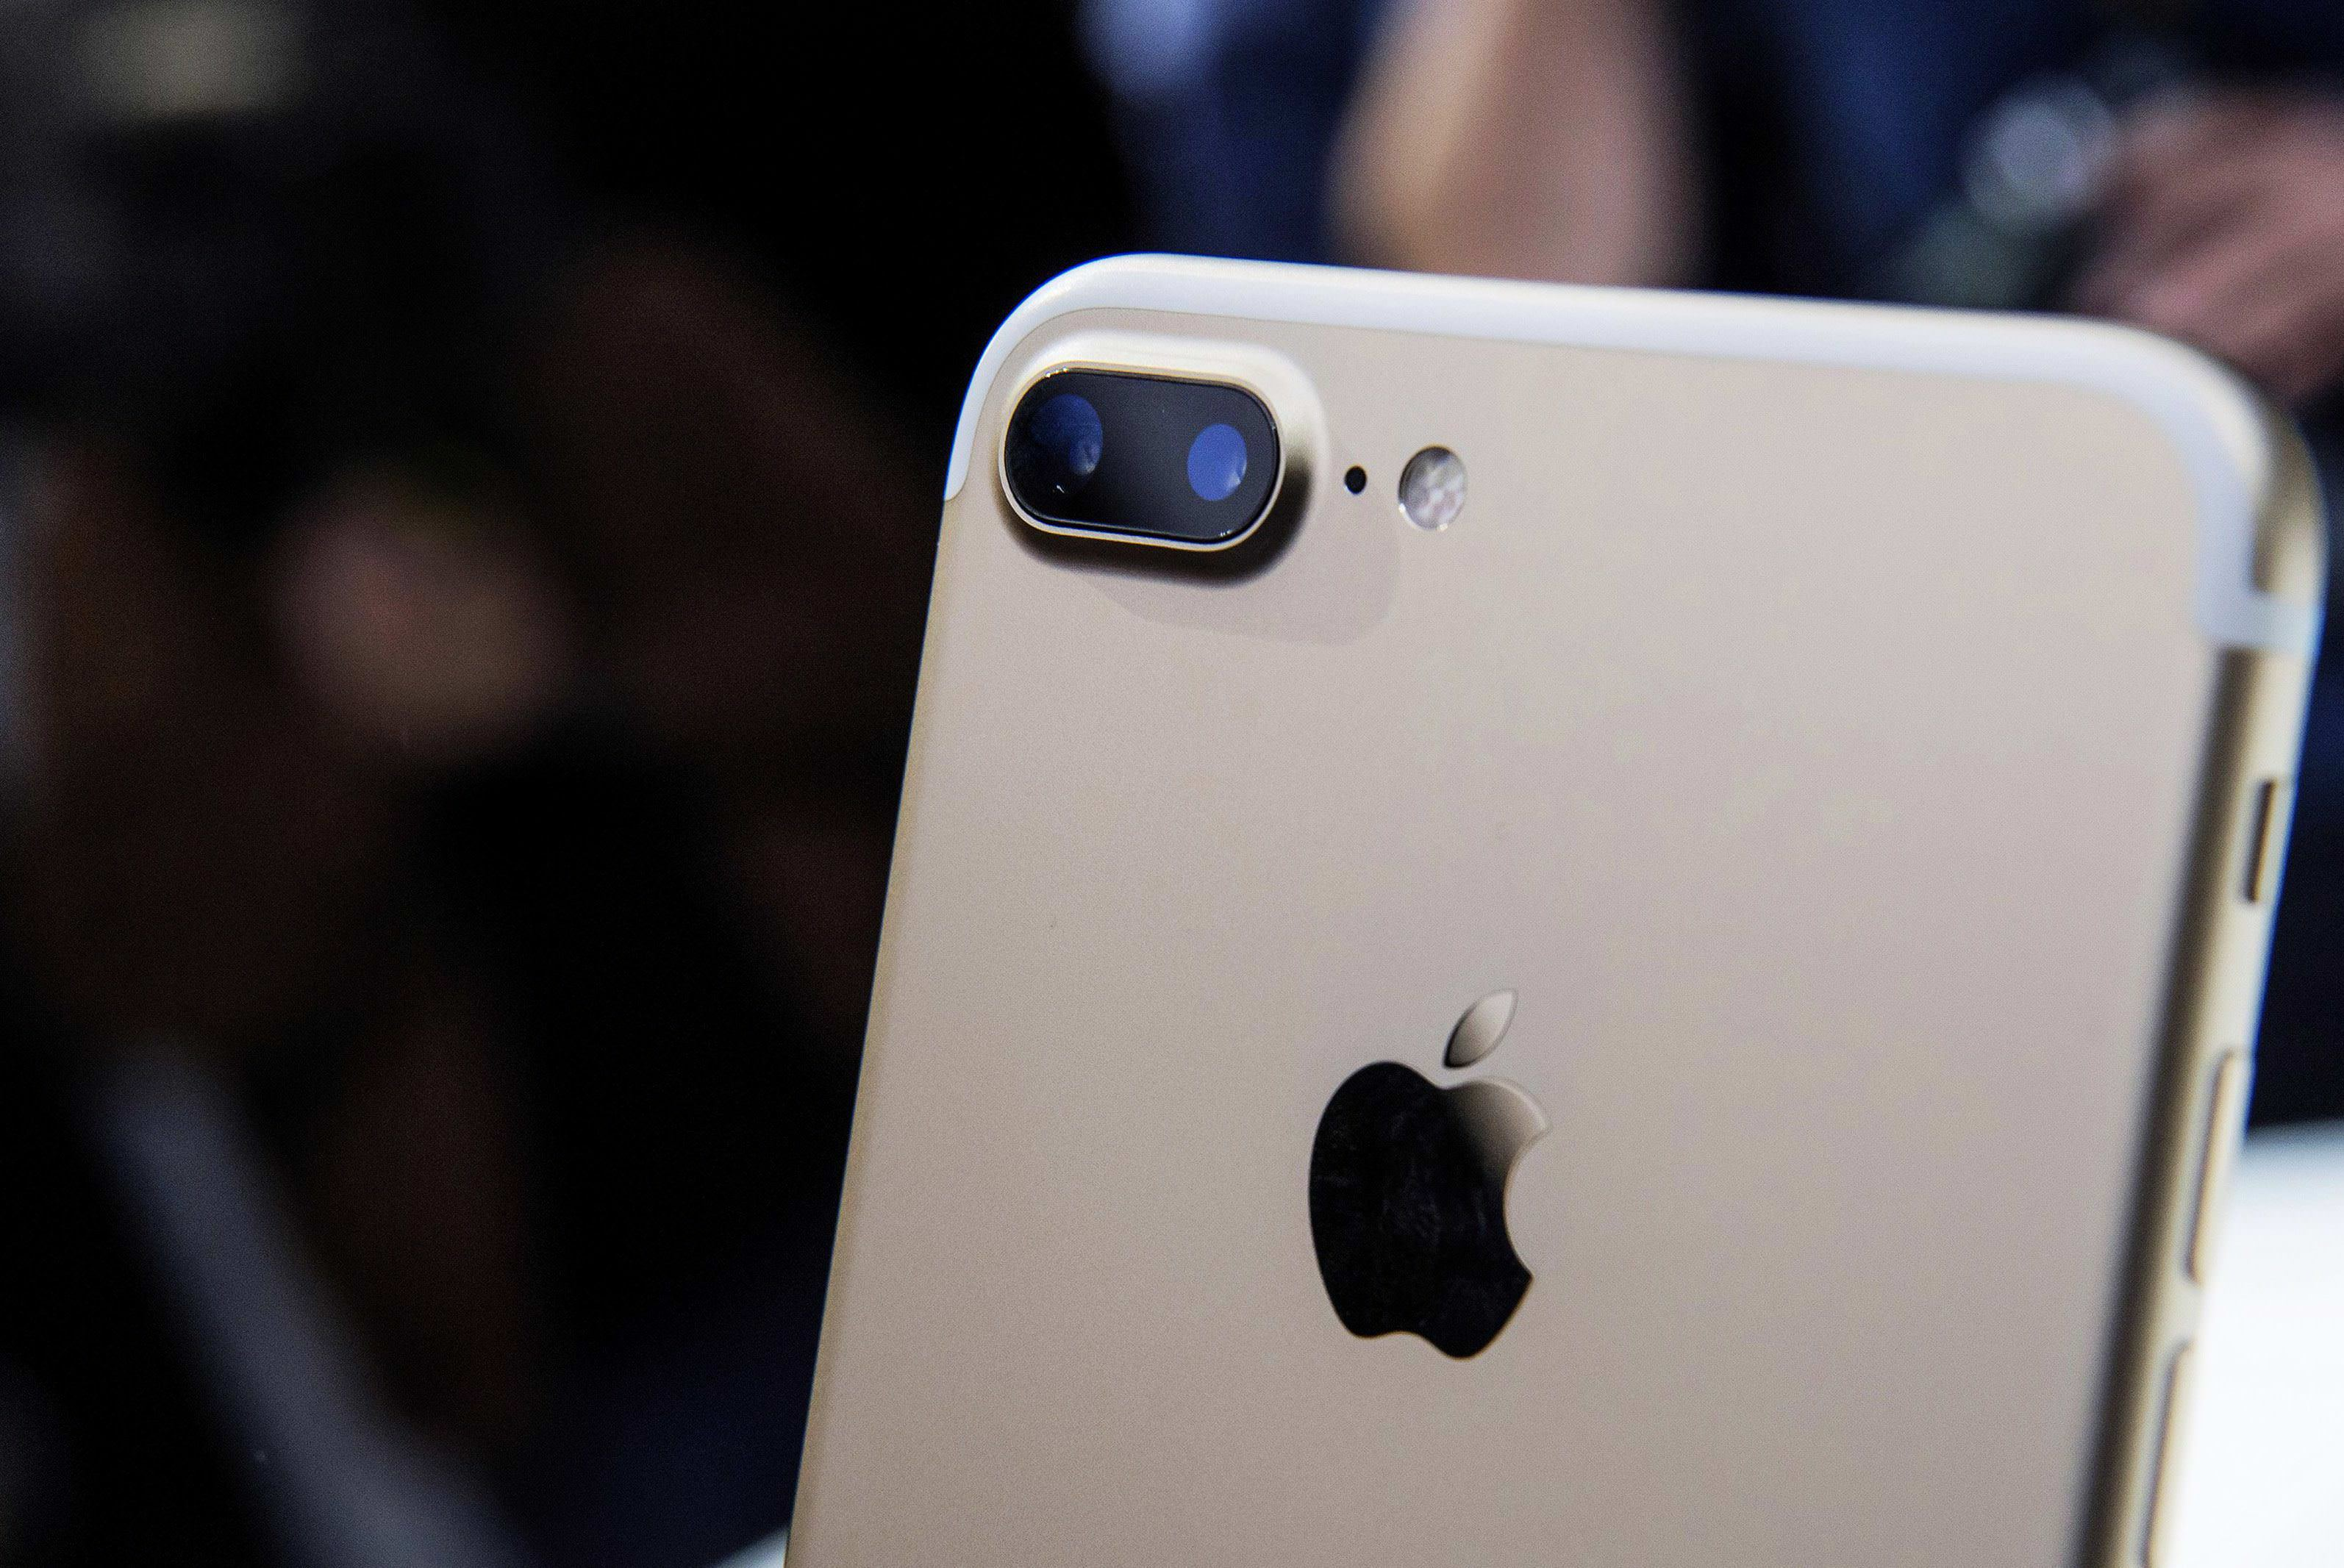 iPhone7: The In-Depth Review